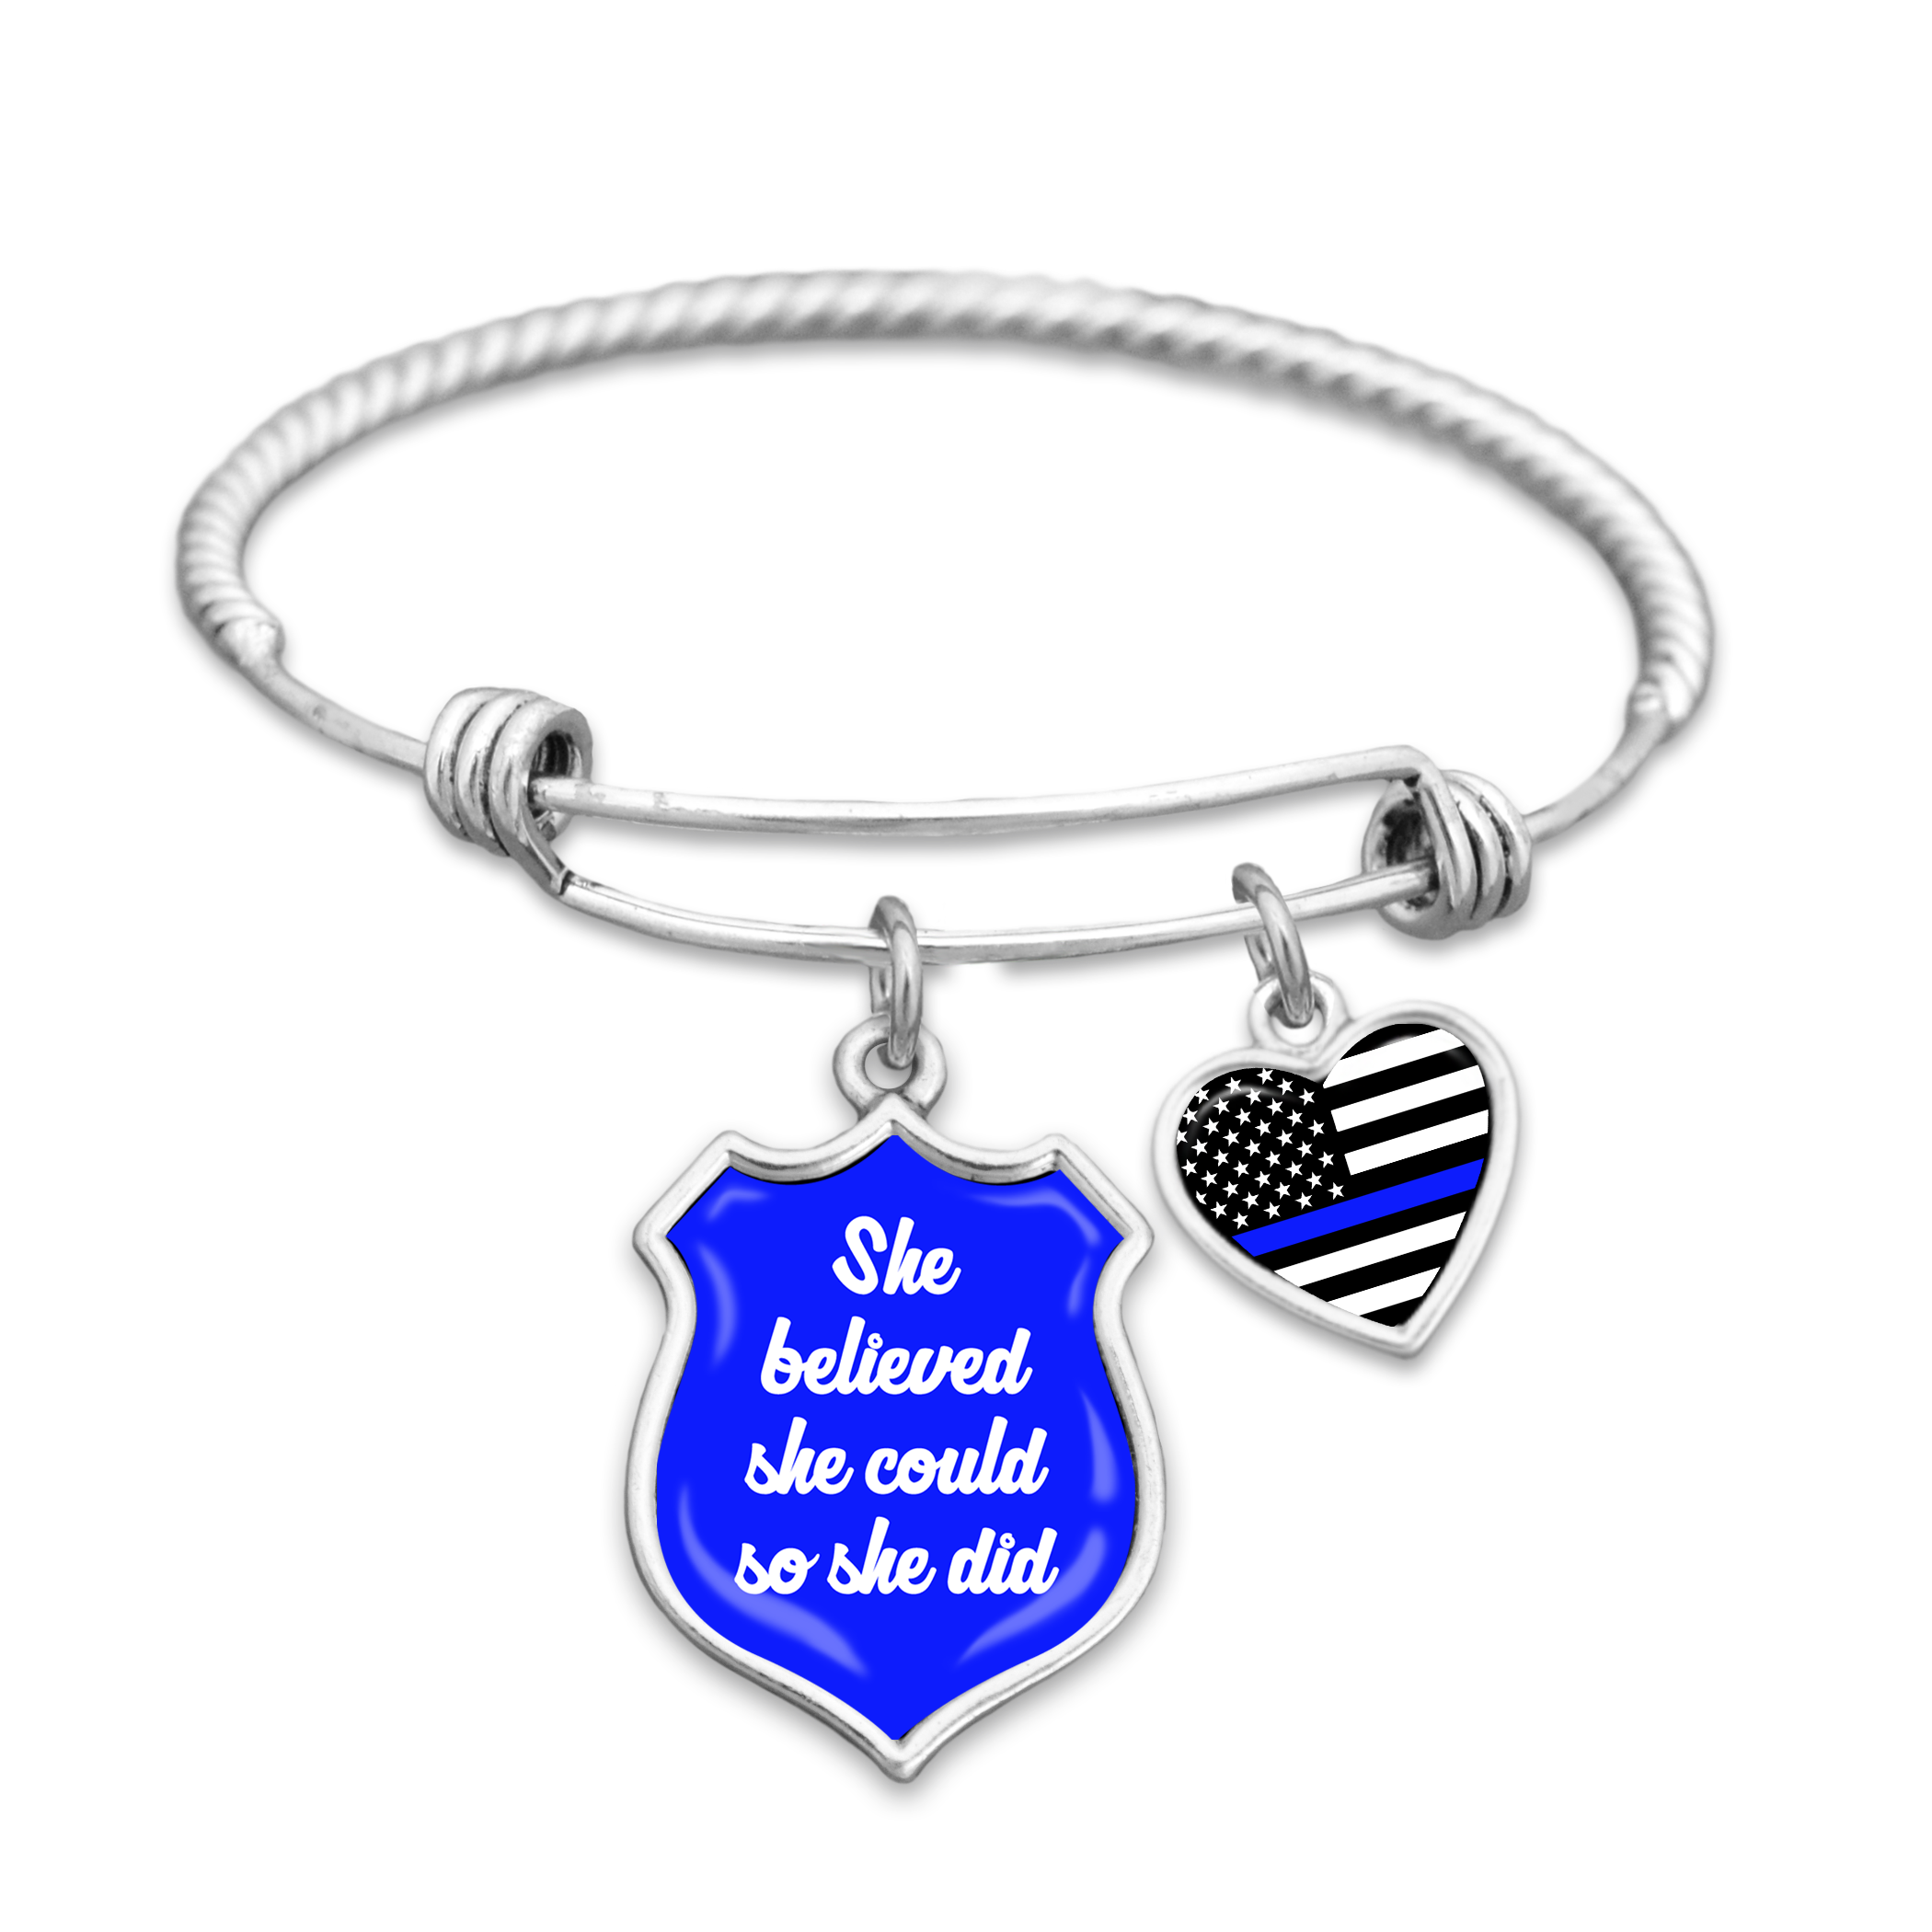 Thin Blue Line She Believed She Could So She Did Charm Bracelet